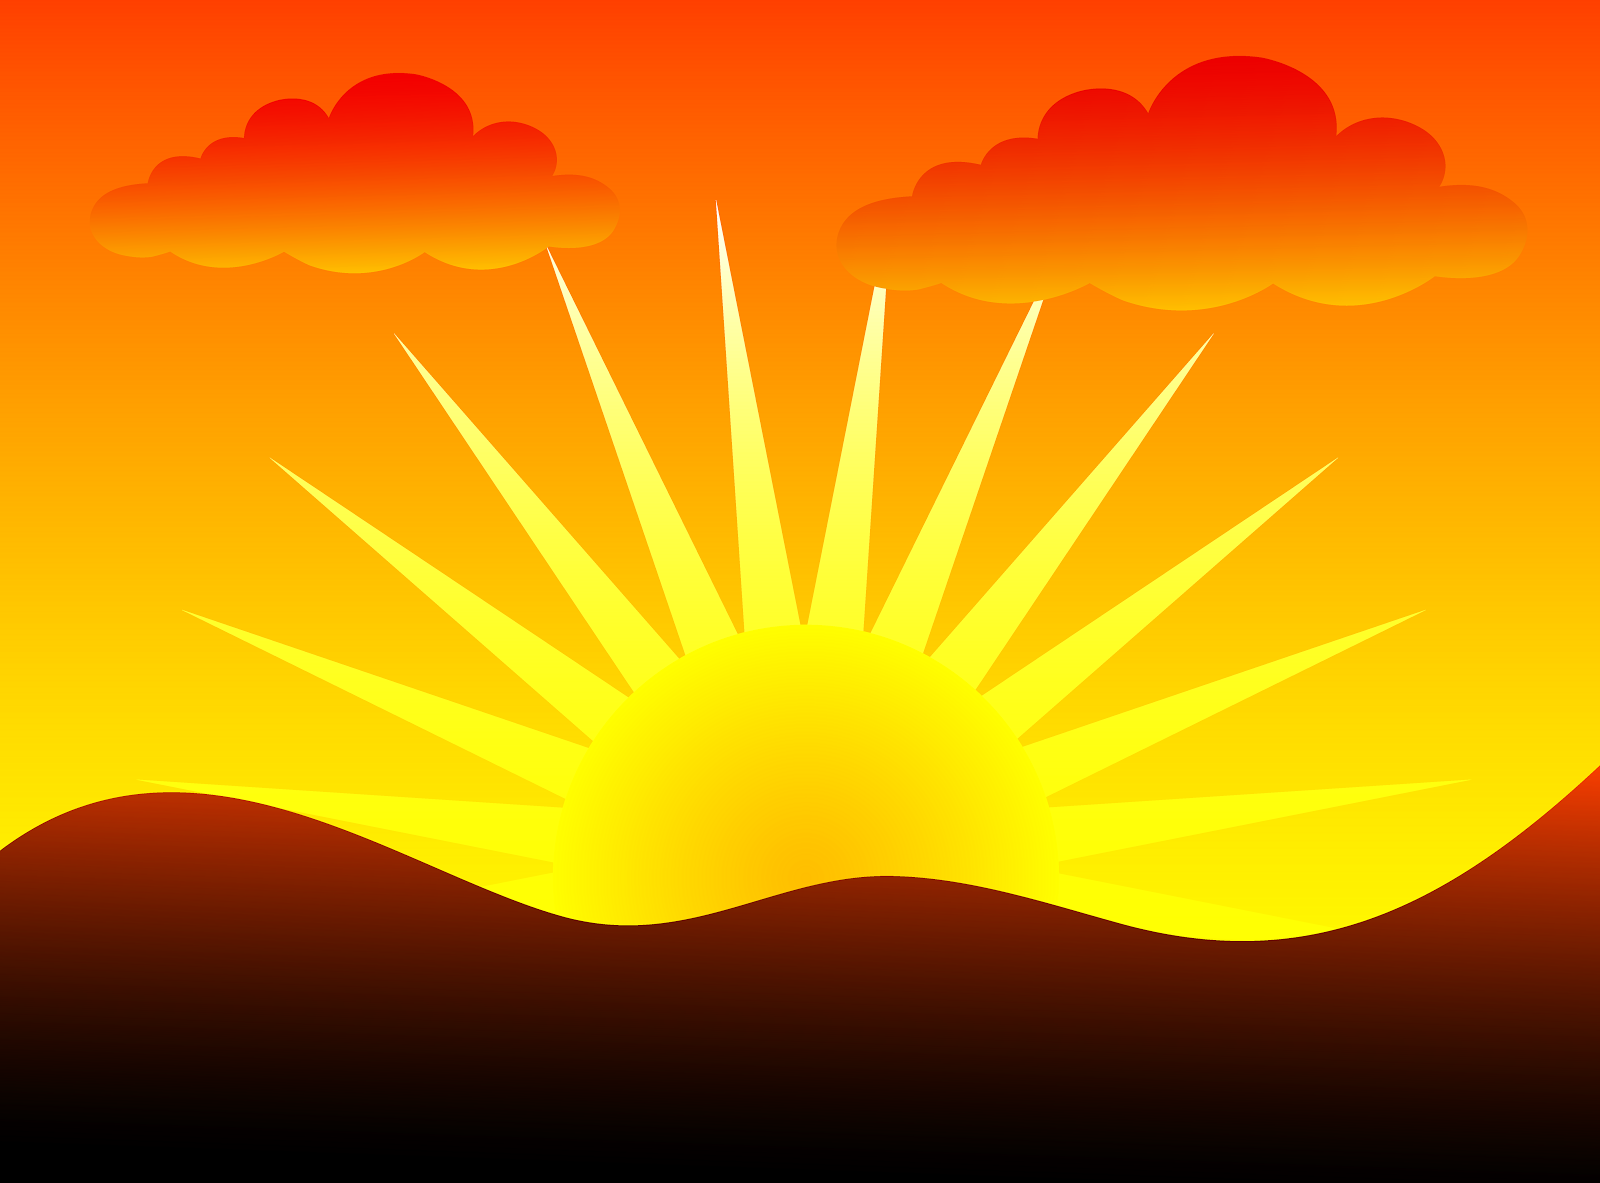 Sunrise clipart #5, Download drawings